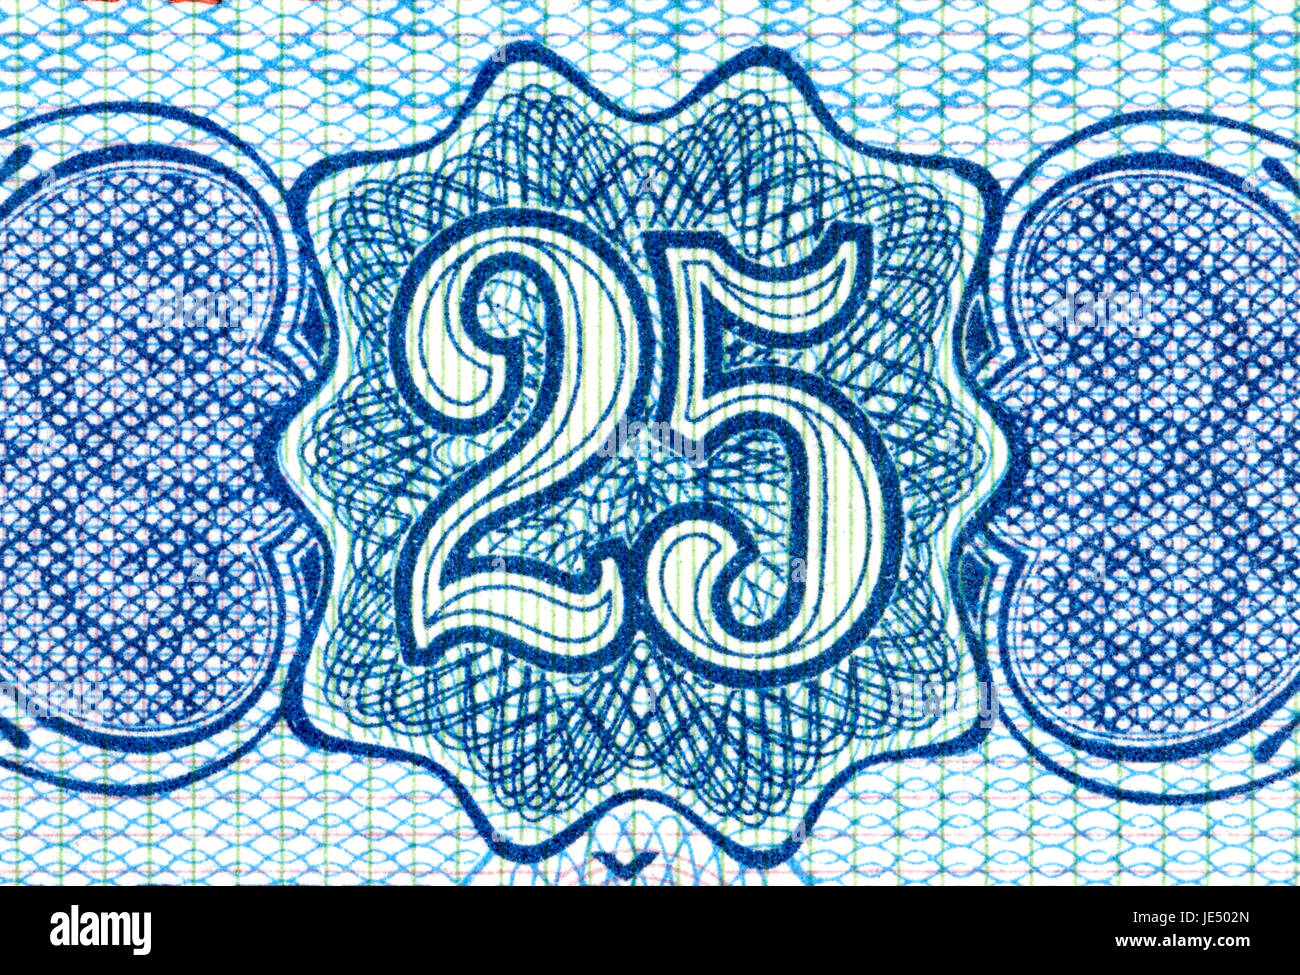 Detail from a 25kc Czech banknote - NUMBER 25 - Stock Image